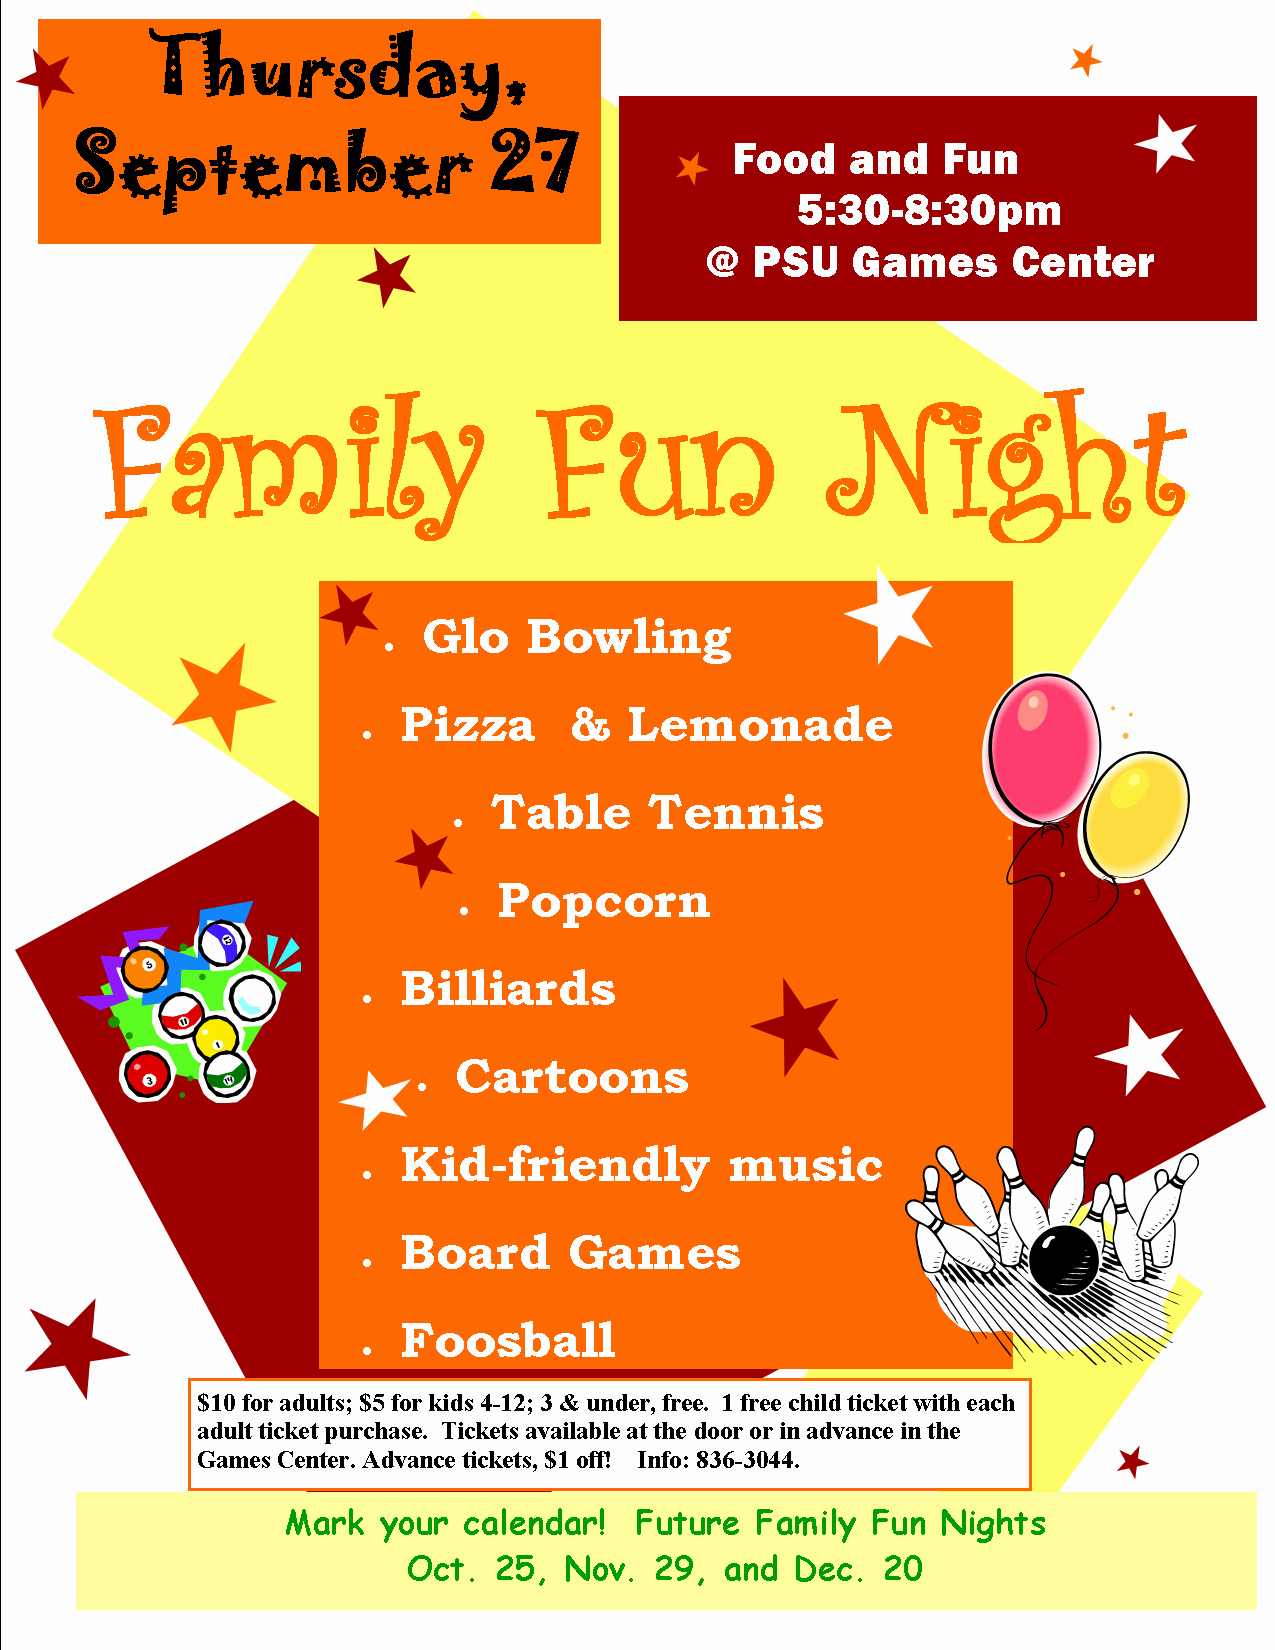 Family Fun Night Flyer Template Awesome Family Fun Night Level 1 Game Center Plaster Student